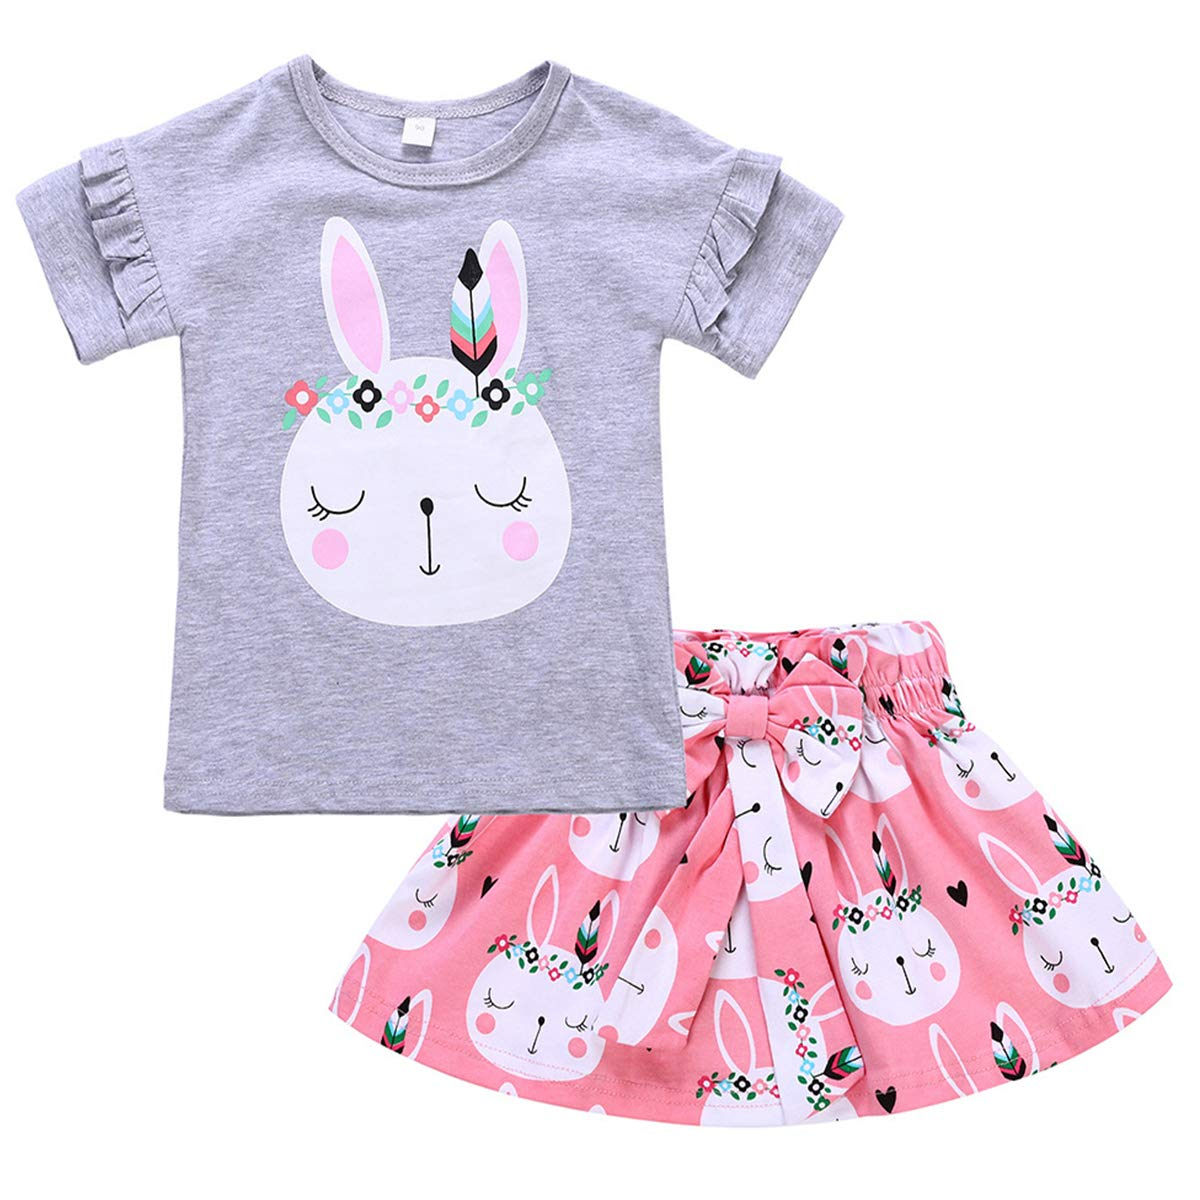 Infant Baby Girls Long Sleeve Baby Clothes Love Autism Awareness Unisex Button Playsuit Outfit Clothes